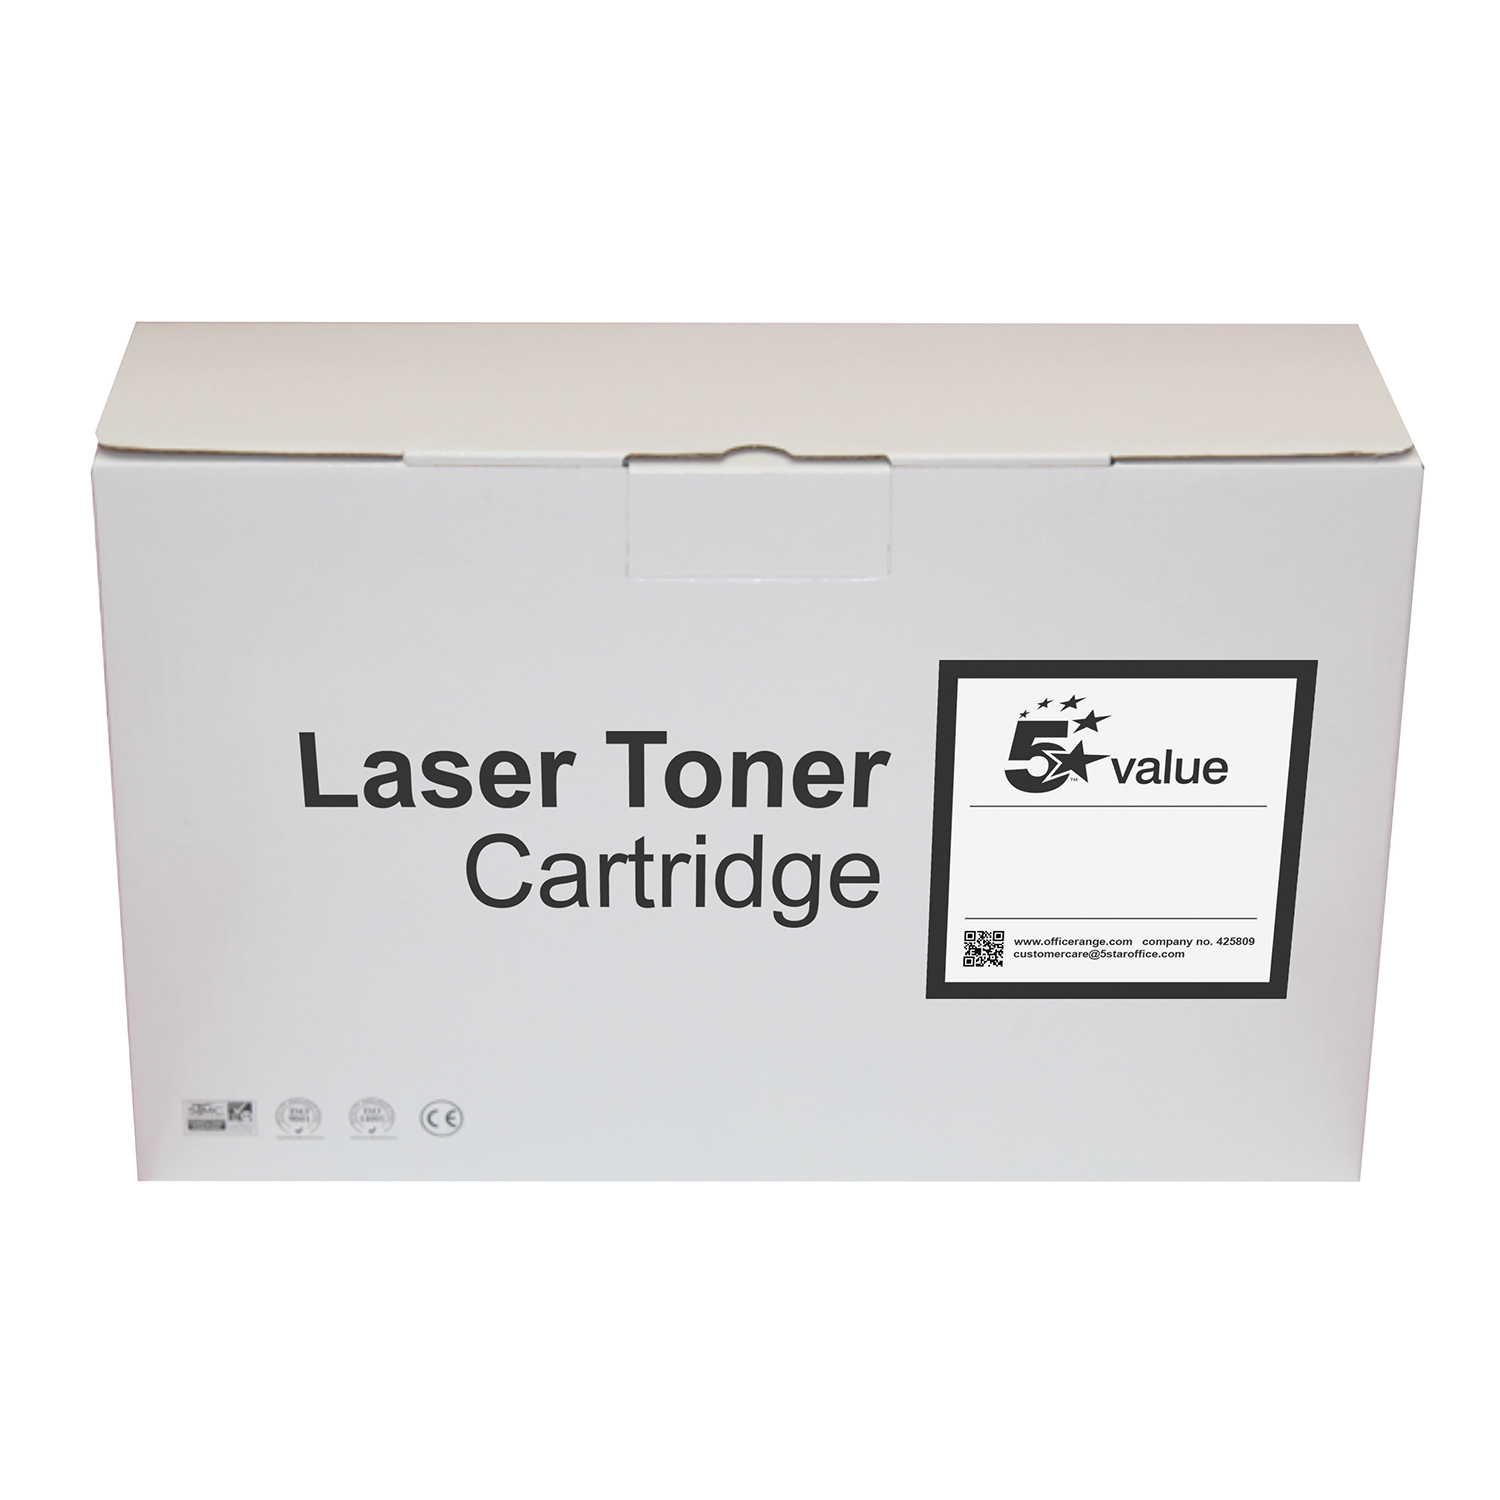 5 Star Value Remanufactured Laser Toner Cartridge Page Life 6800pp Black HP No. 80X CF280X Alternative